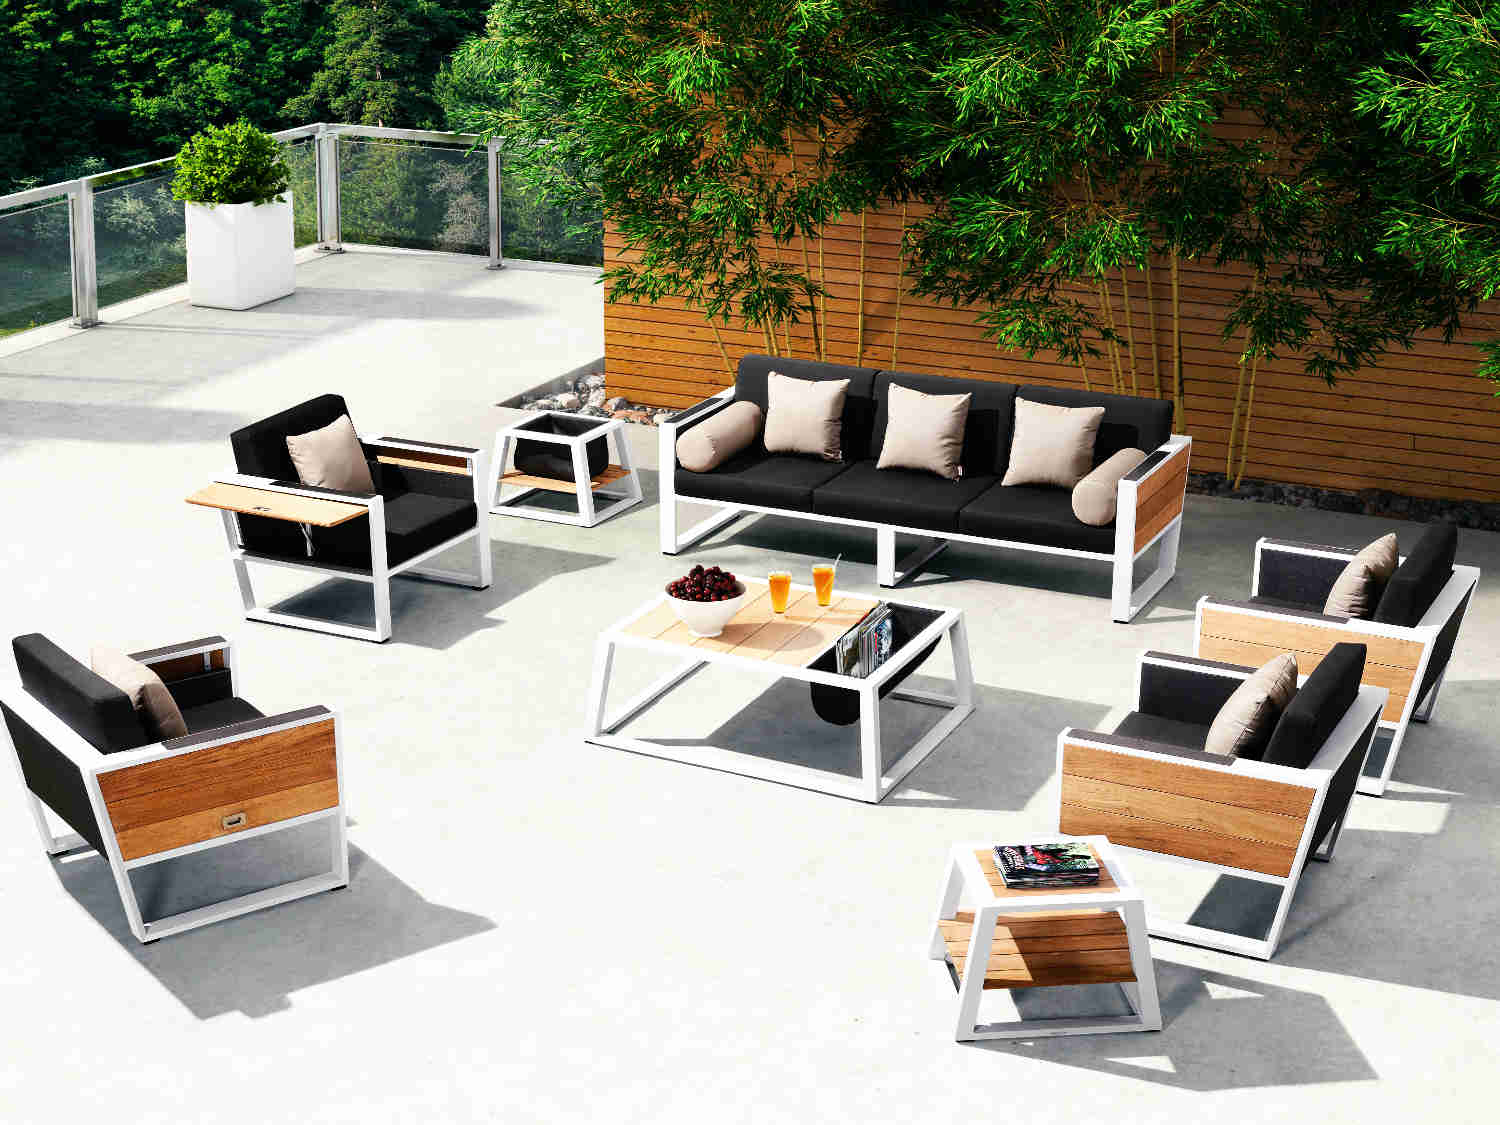 exklusive gartenm bel higold luxus terrassenm bel kaufen stuhlwerk eu. Black Bedroom Furniture Sets. Home Design Ideas